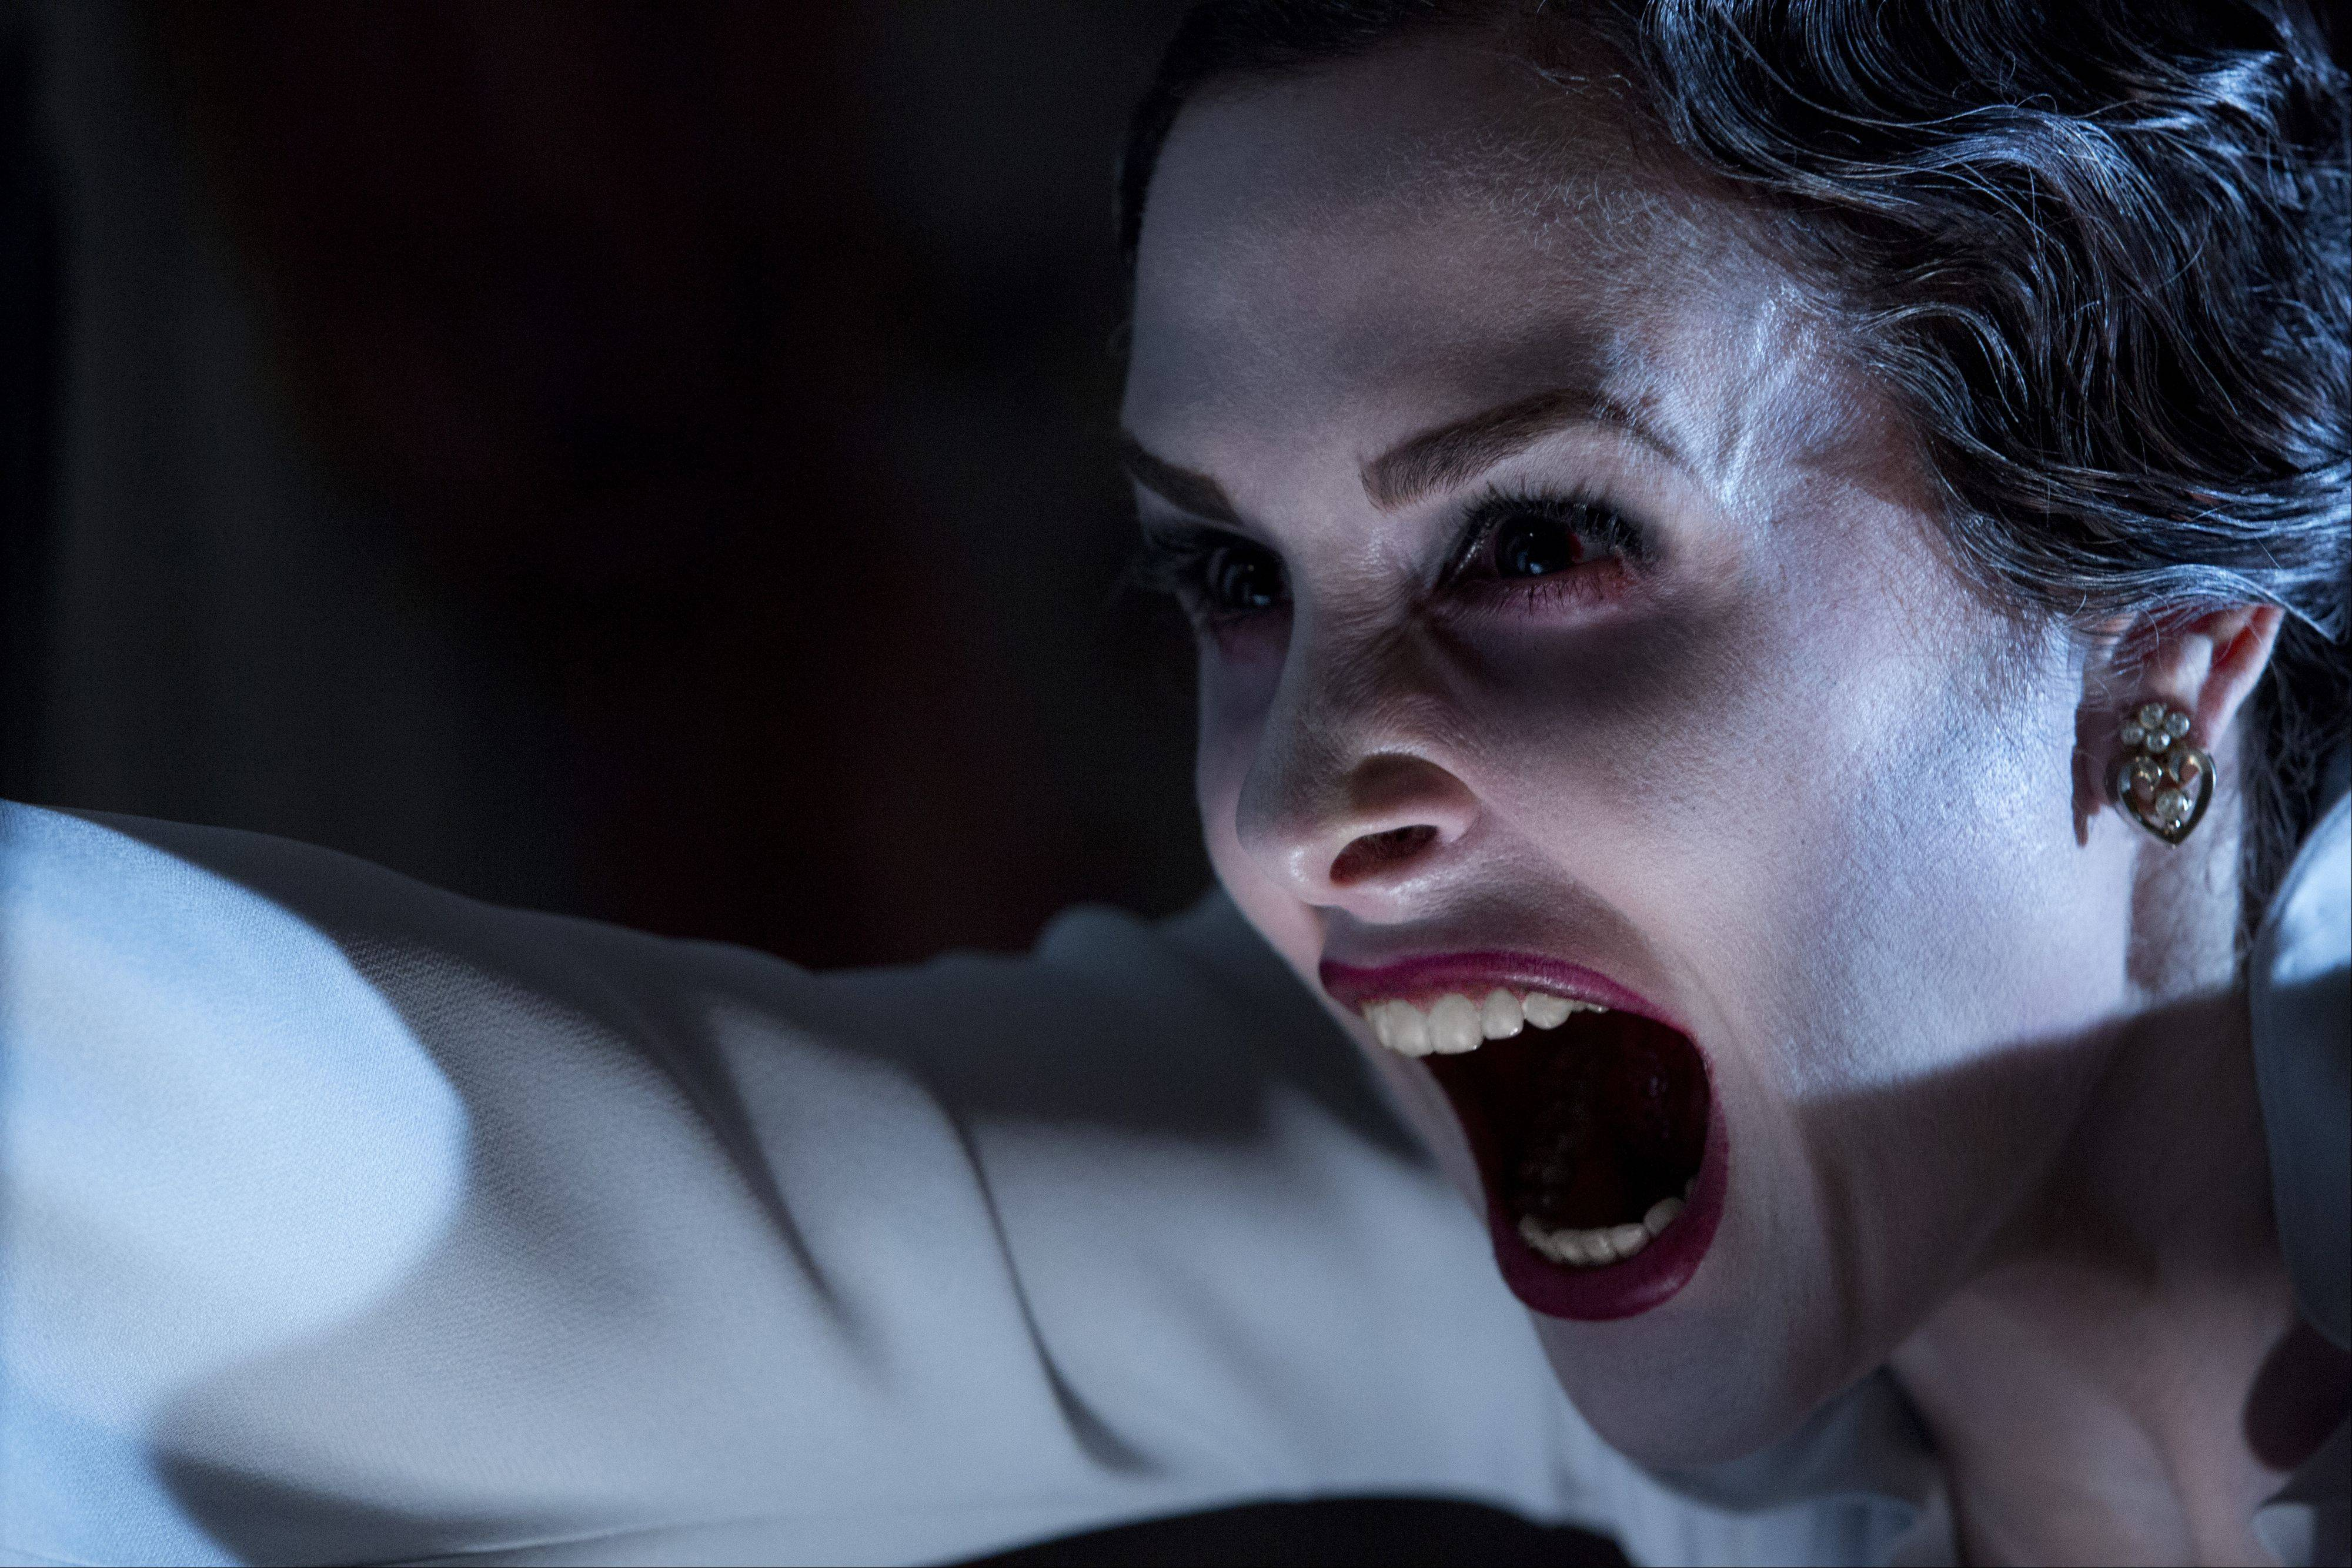 "The haunted-house horror sequel ""Insidious Chapter 2."" debuted in first place with $41 million, more than tripling the opening take of the 2010 original."